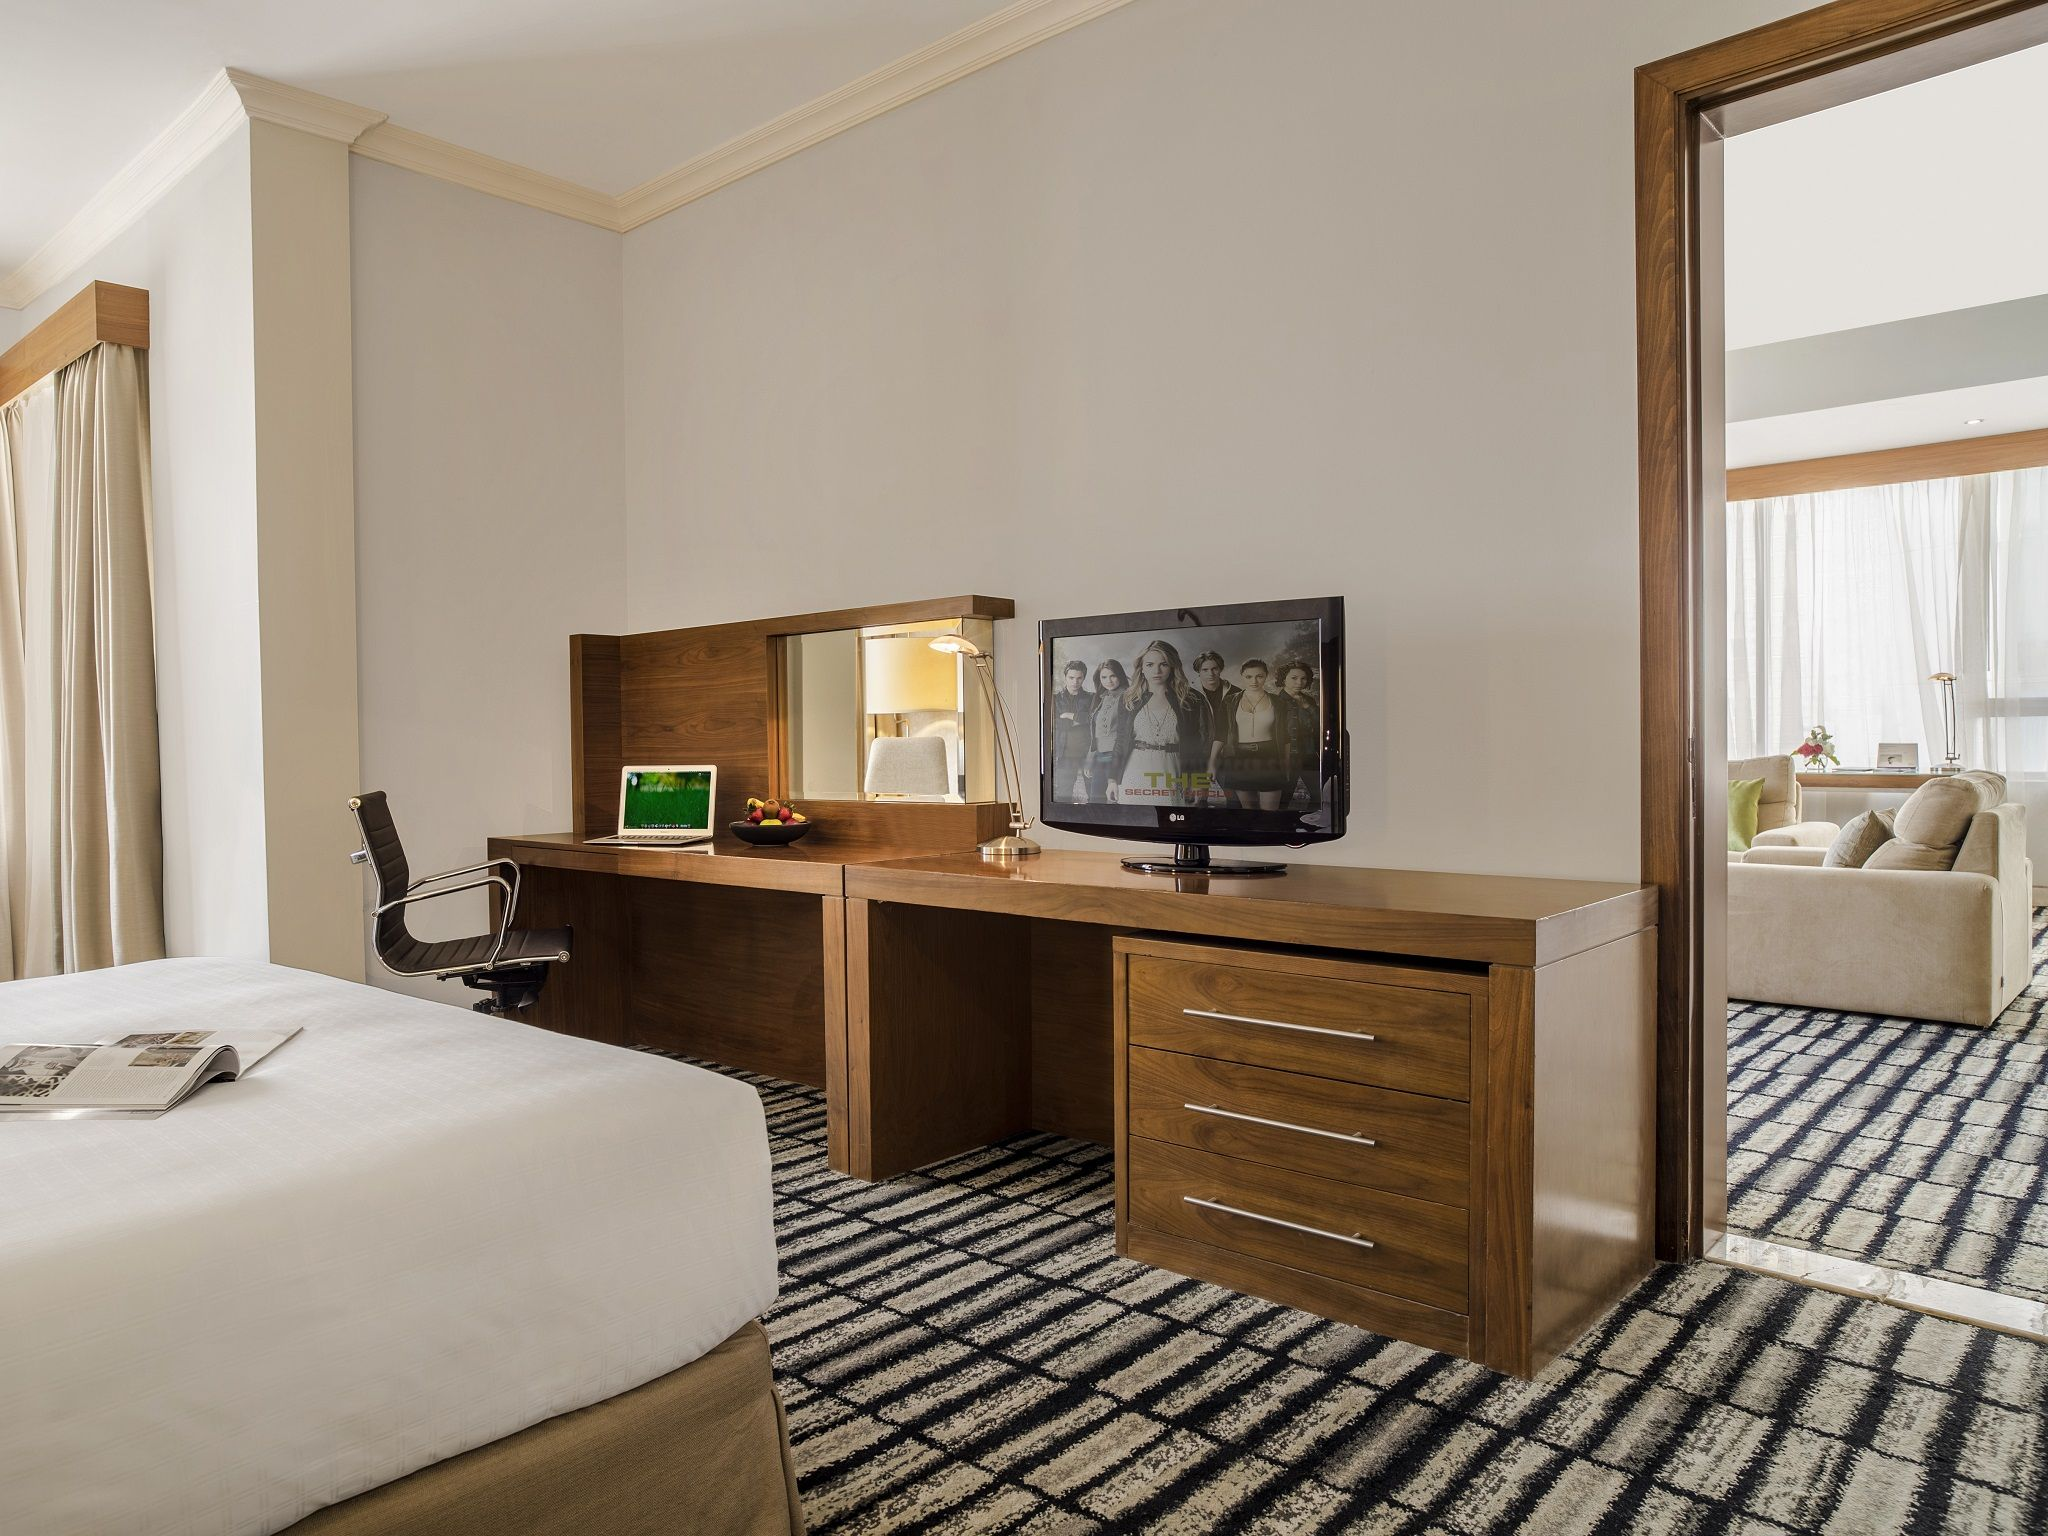 Take Pleasure In One Of Our Grand 98sqm Premium Suites Featuring One Bedroom With A King Bed Living Room Guest Bath Floor To Ceiling Windows One Bedroom Room